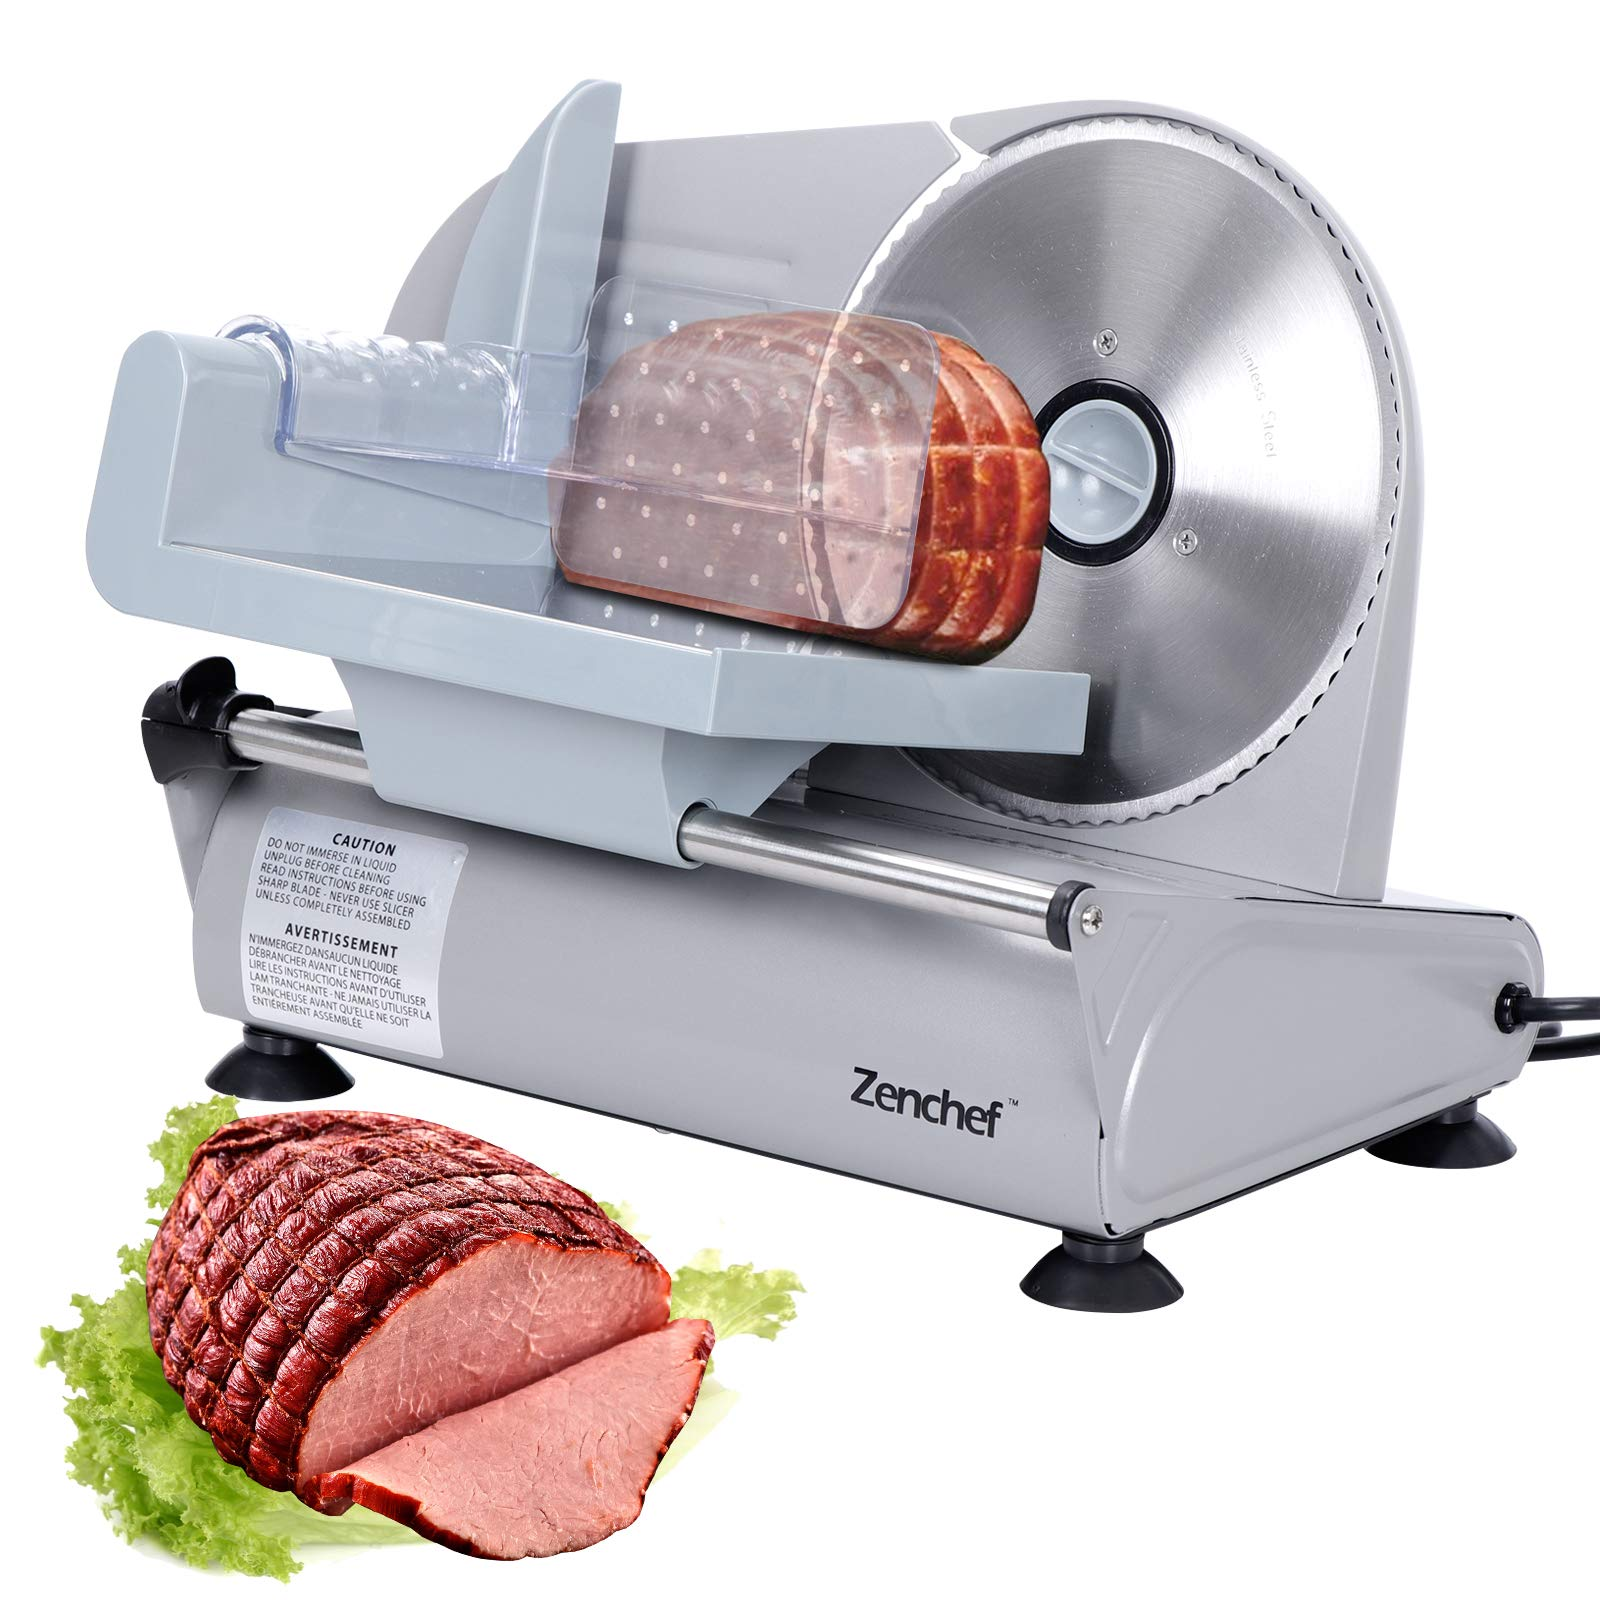 SUPER DEAL Premium Stainless Steel Electric Meat Slicer 7.5'' inch Blade Home Kitchen Deli Meat Food Vegetable Cheese Cutter - Thickness Adjustable - Spacious Sliding Carriage - Easy to clean - 100% Safe to Use by SUPER DEAL